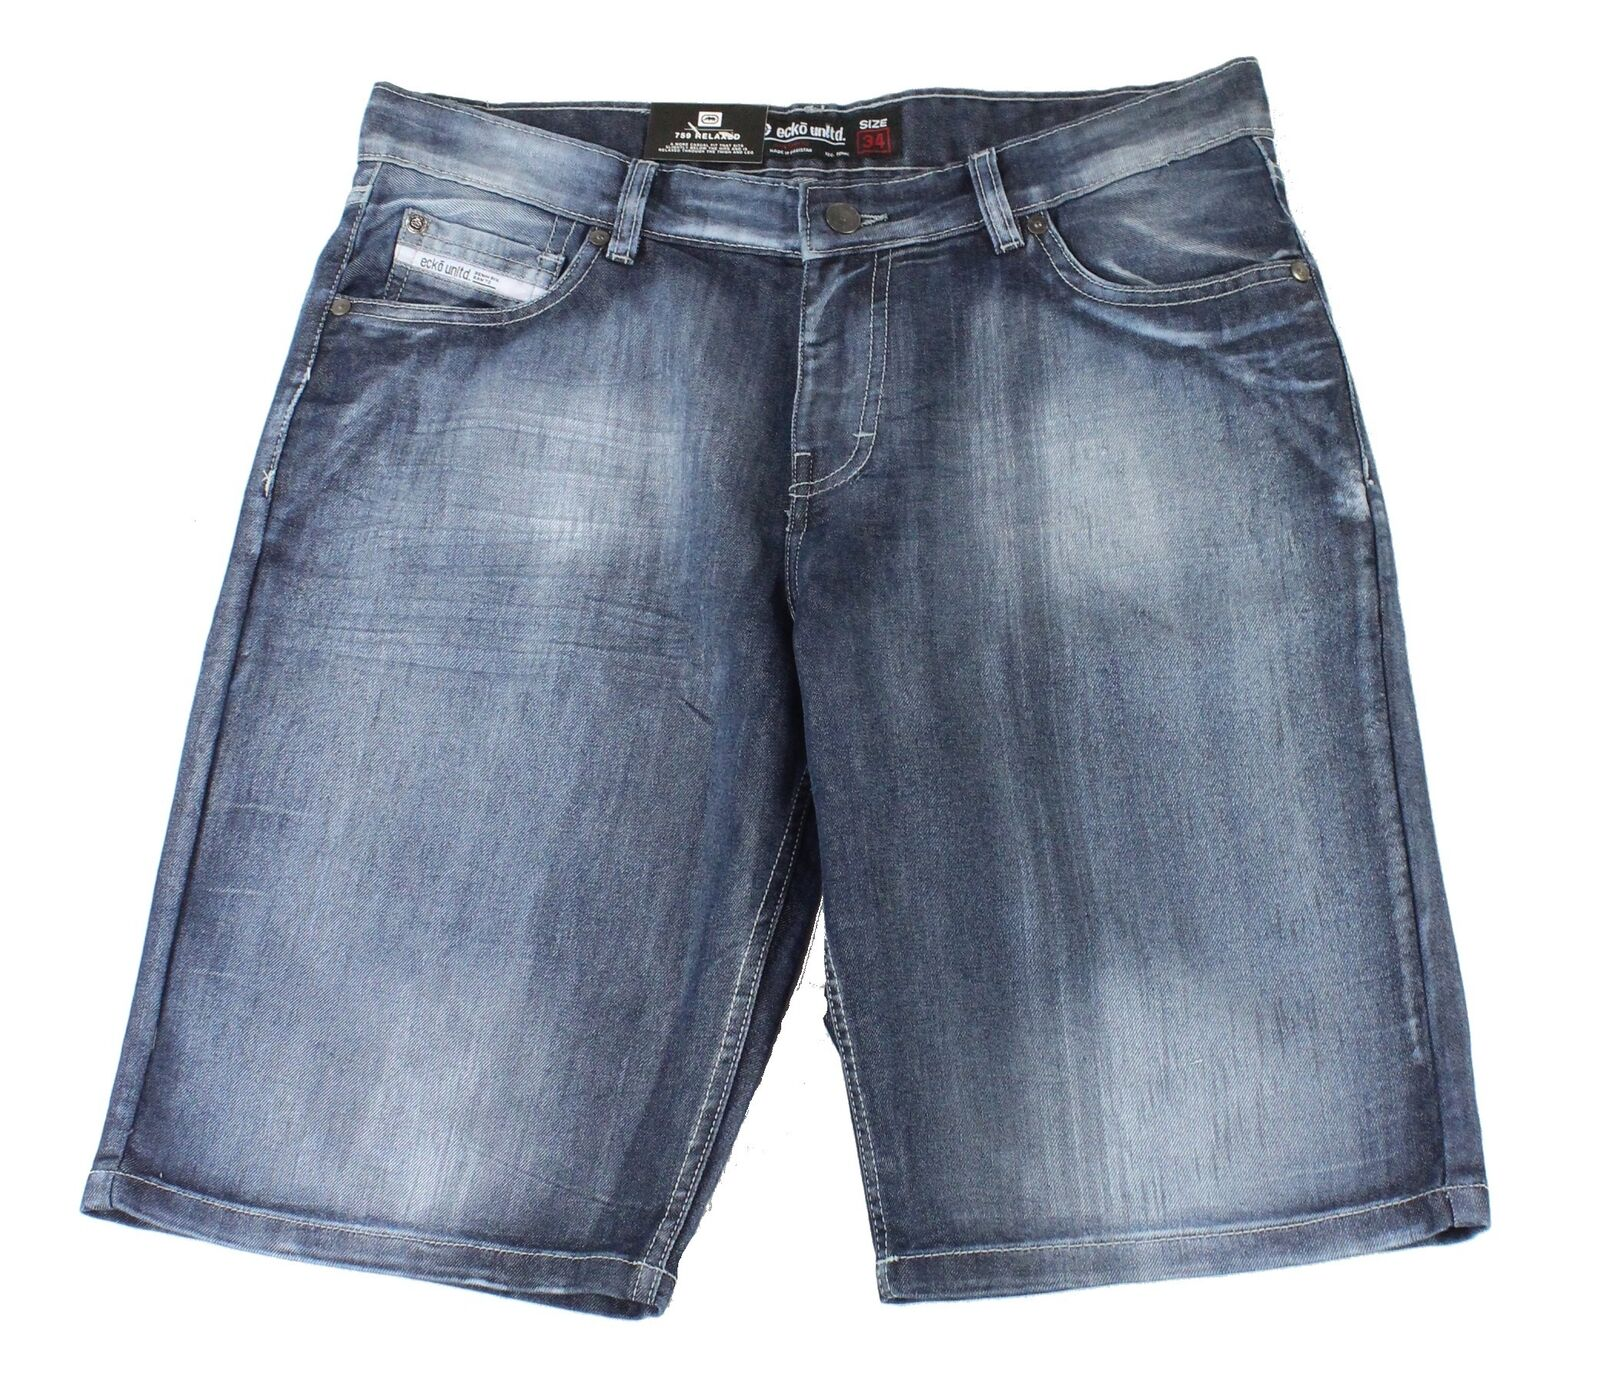 New-Ecko-Unltd-Mens-Shorts-Blue-Size-36-Denim-759-Relaxed-Fit-Washed-48-194